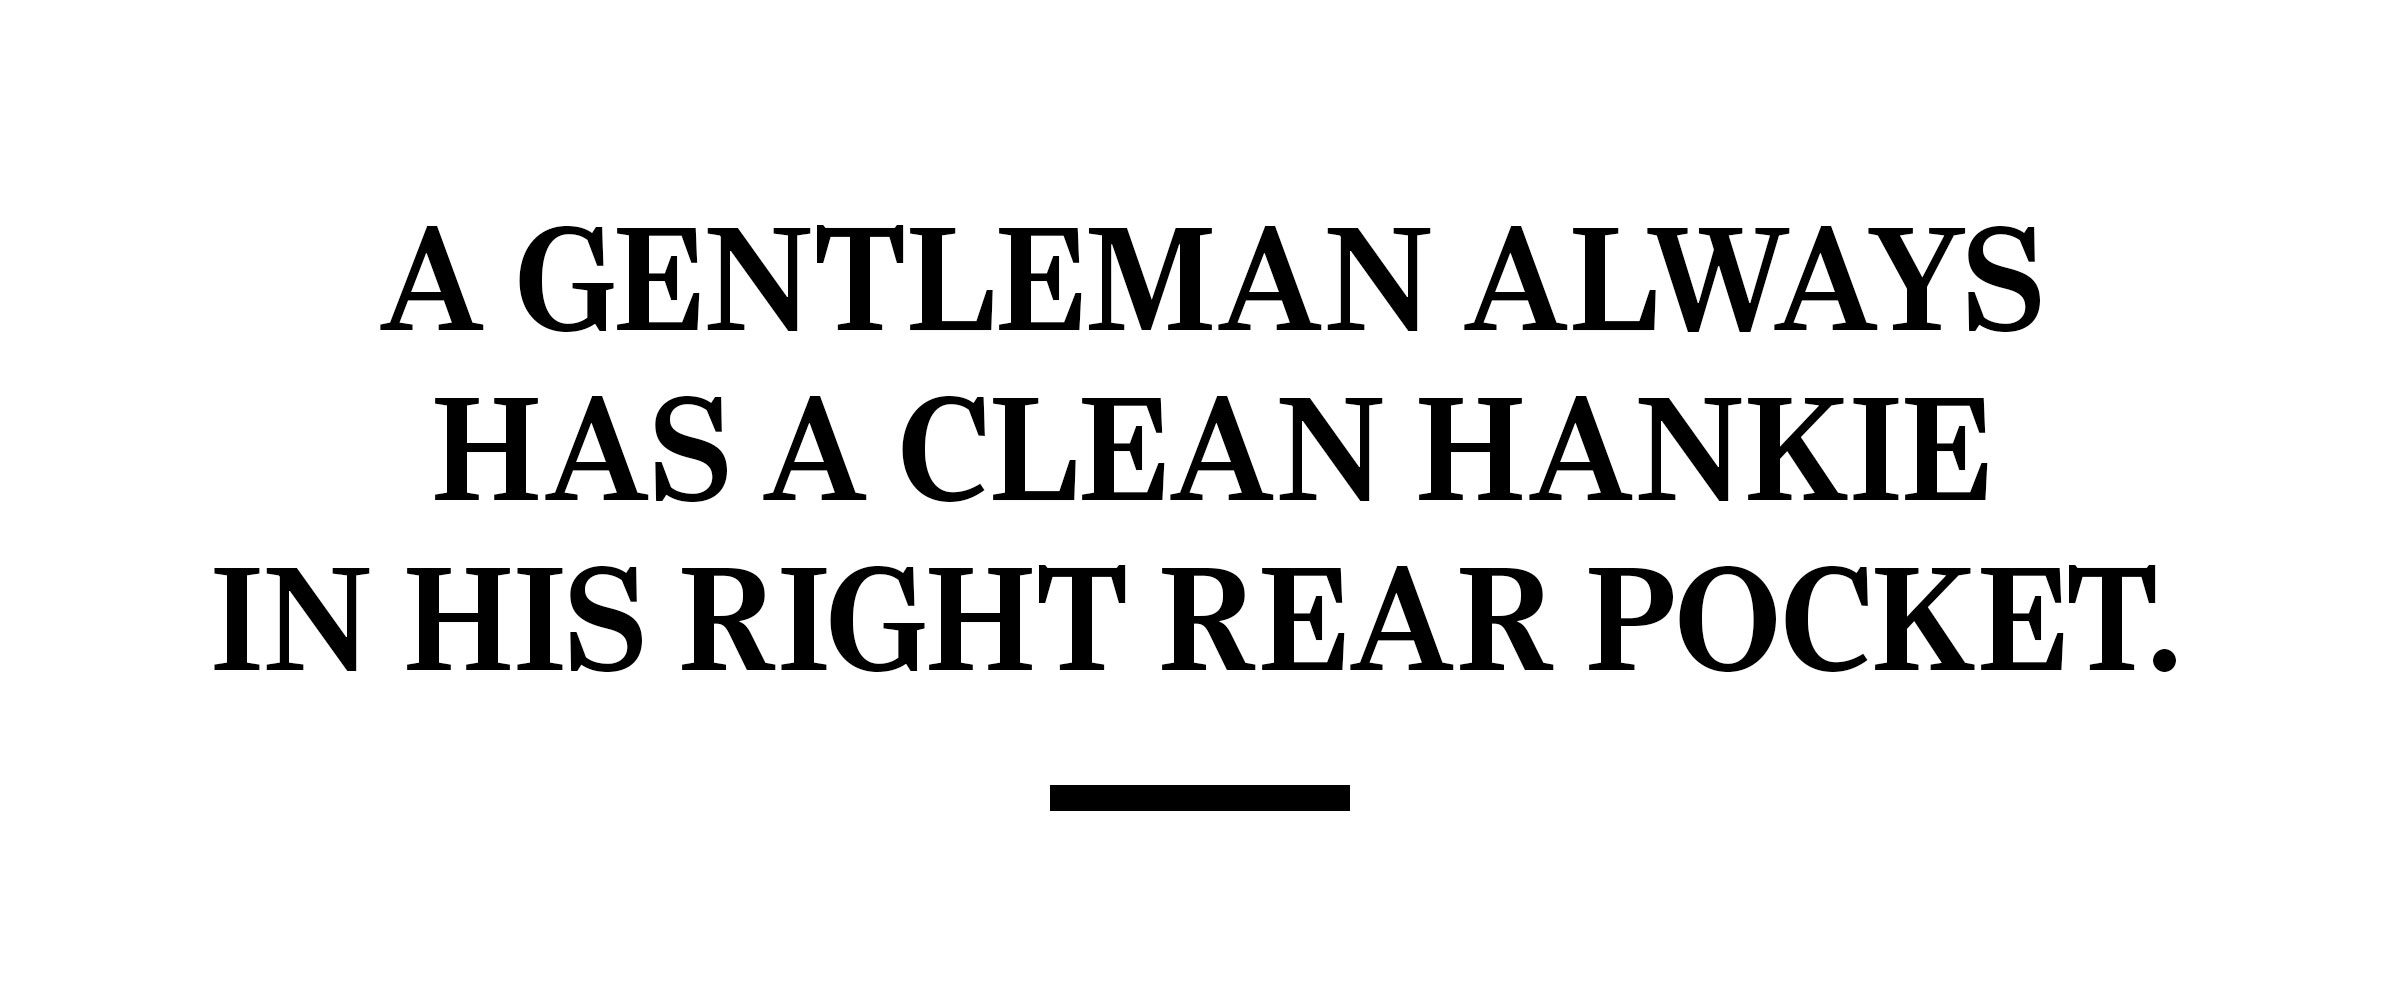 text: A gentleman always has a clean hankie in his right rear pocket.